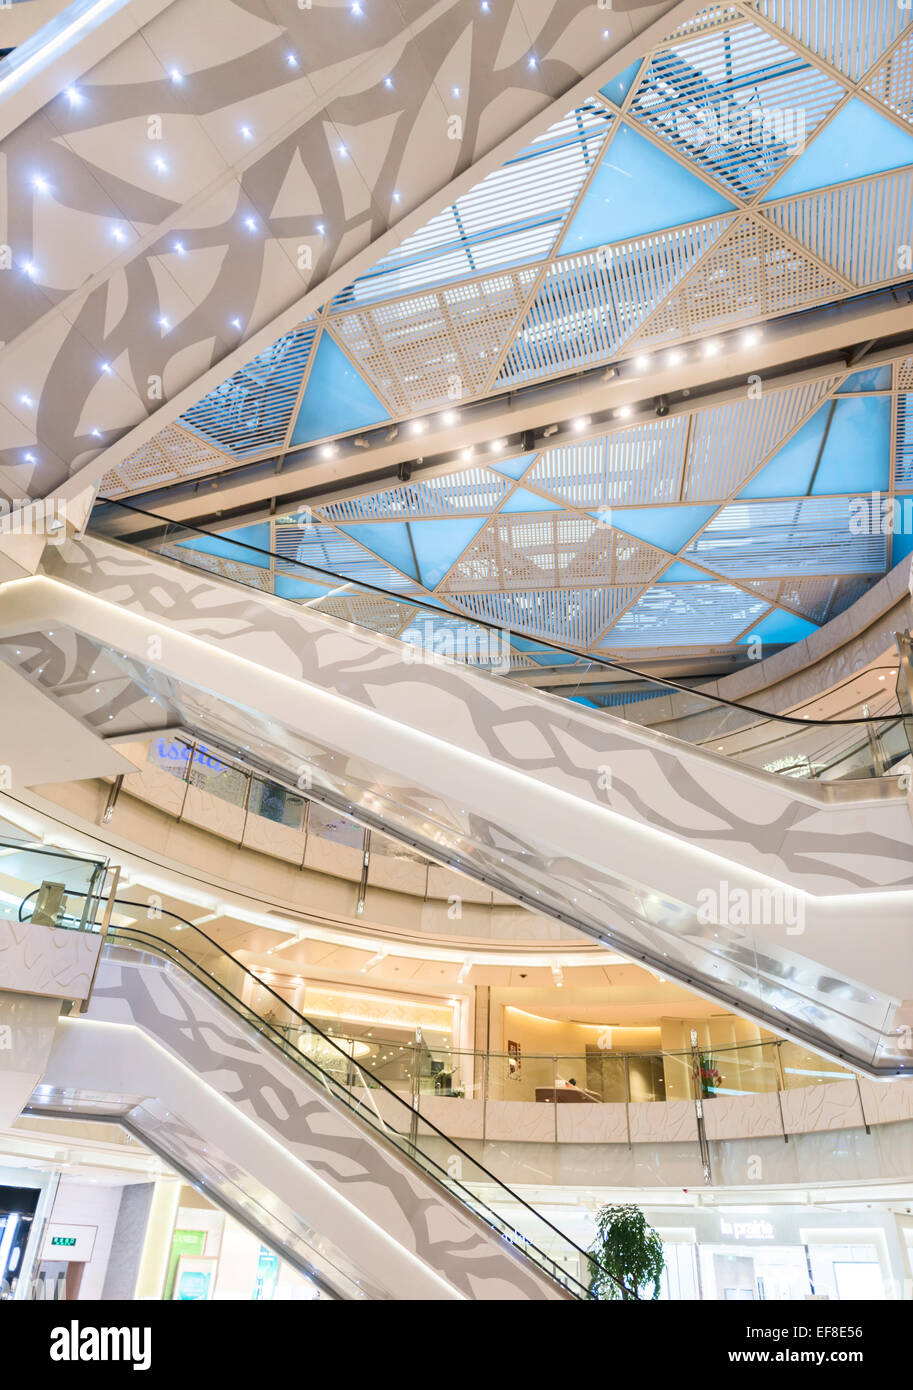 IFC shopping mall modern interior details in Shanghai, China 2014 - Stock Image